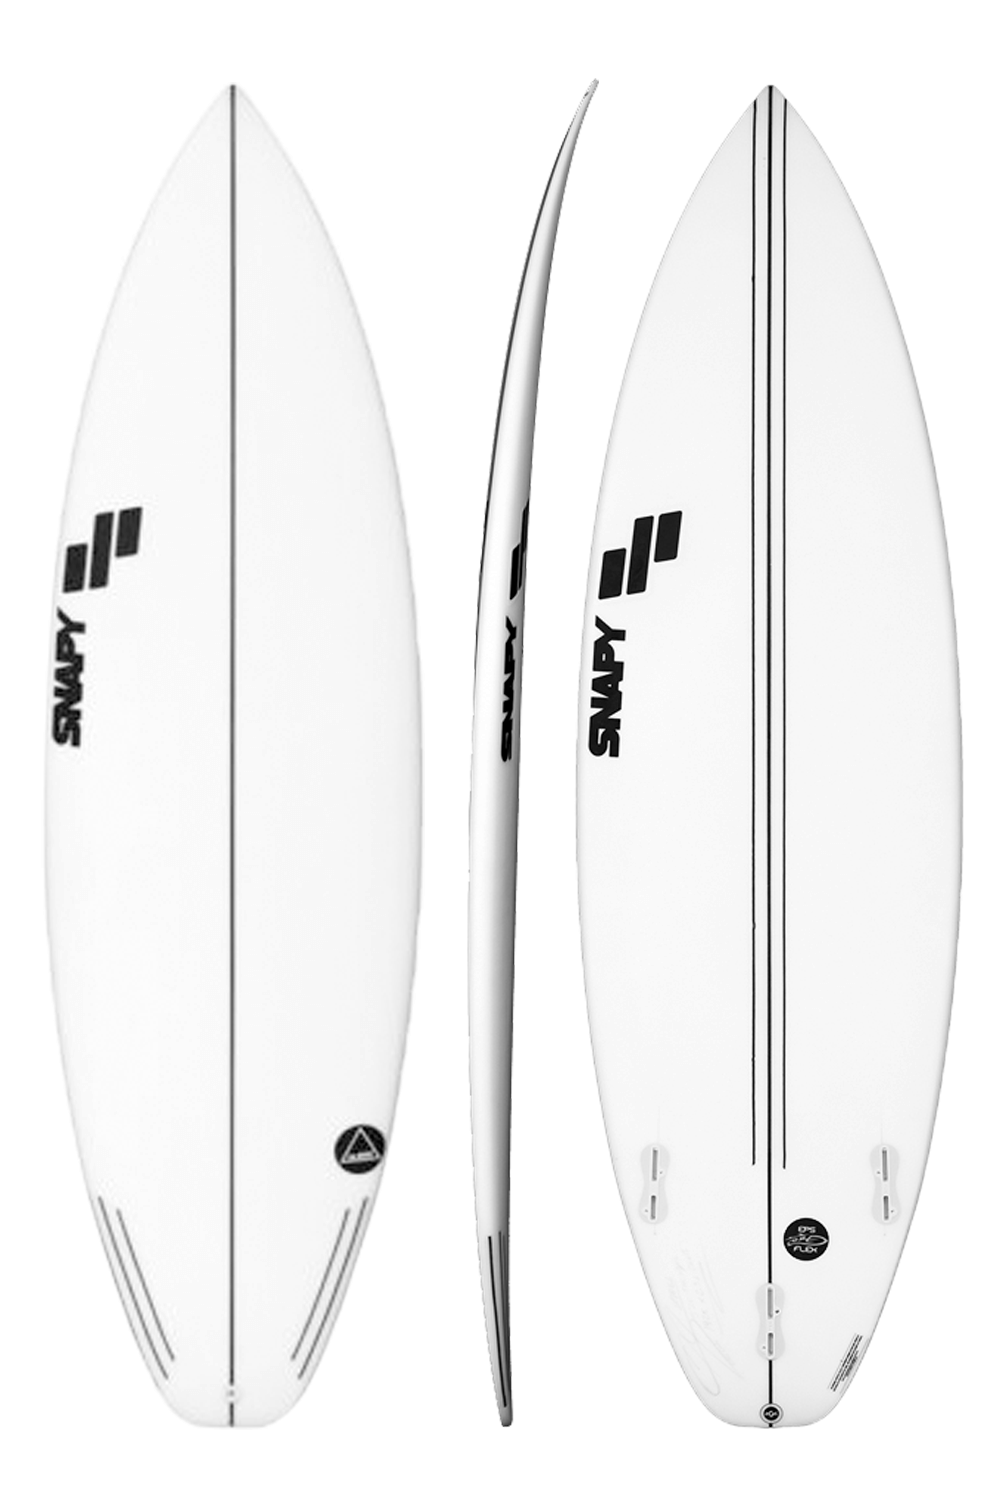 The Hype | SNAPY SURFBOARDS